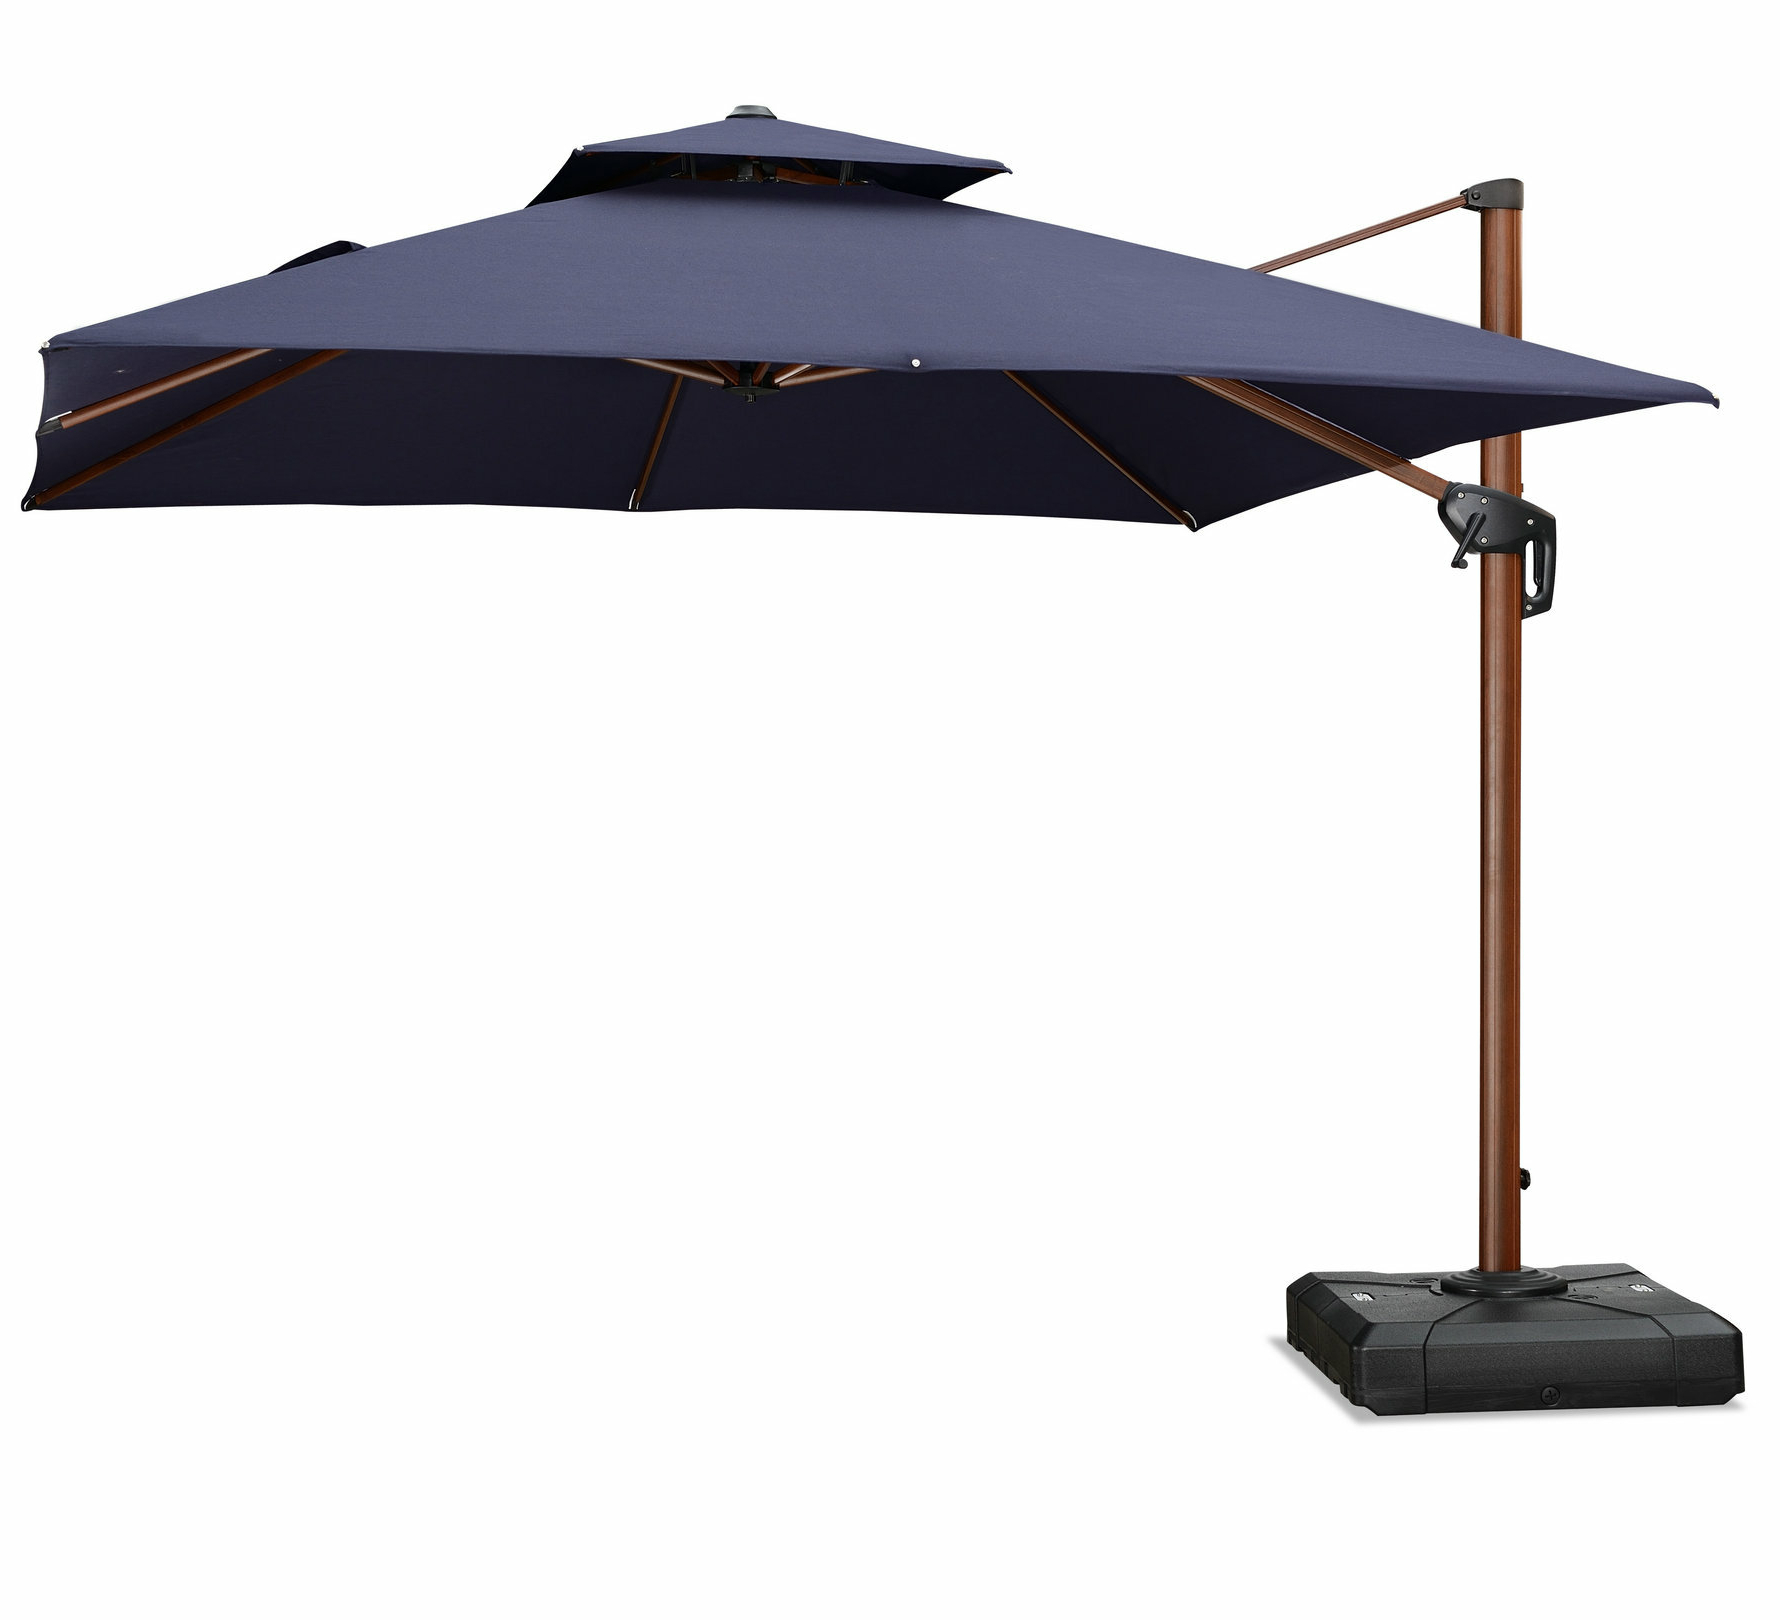 Trendy Lytham Cantilever Umbrellas Throughout Waddell 10' Square Cantilever Umbrella (View 19 of 20)